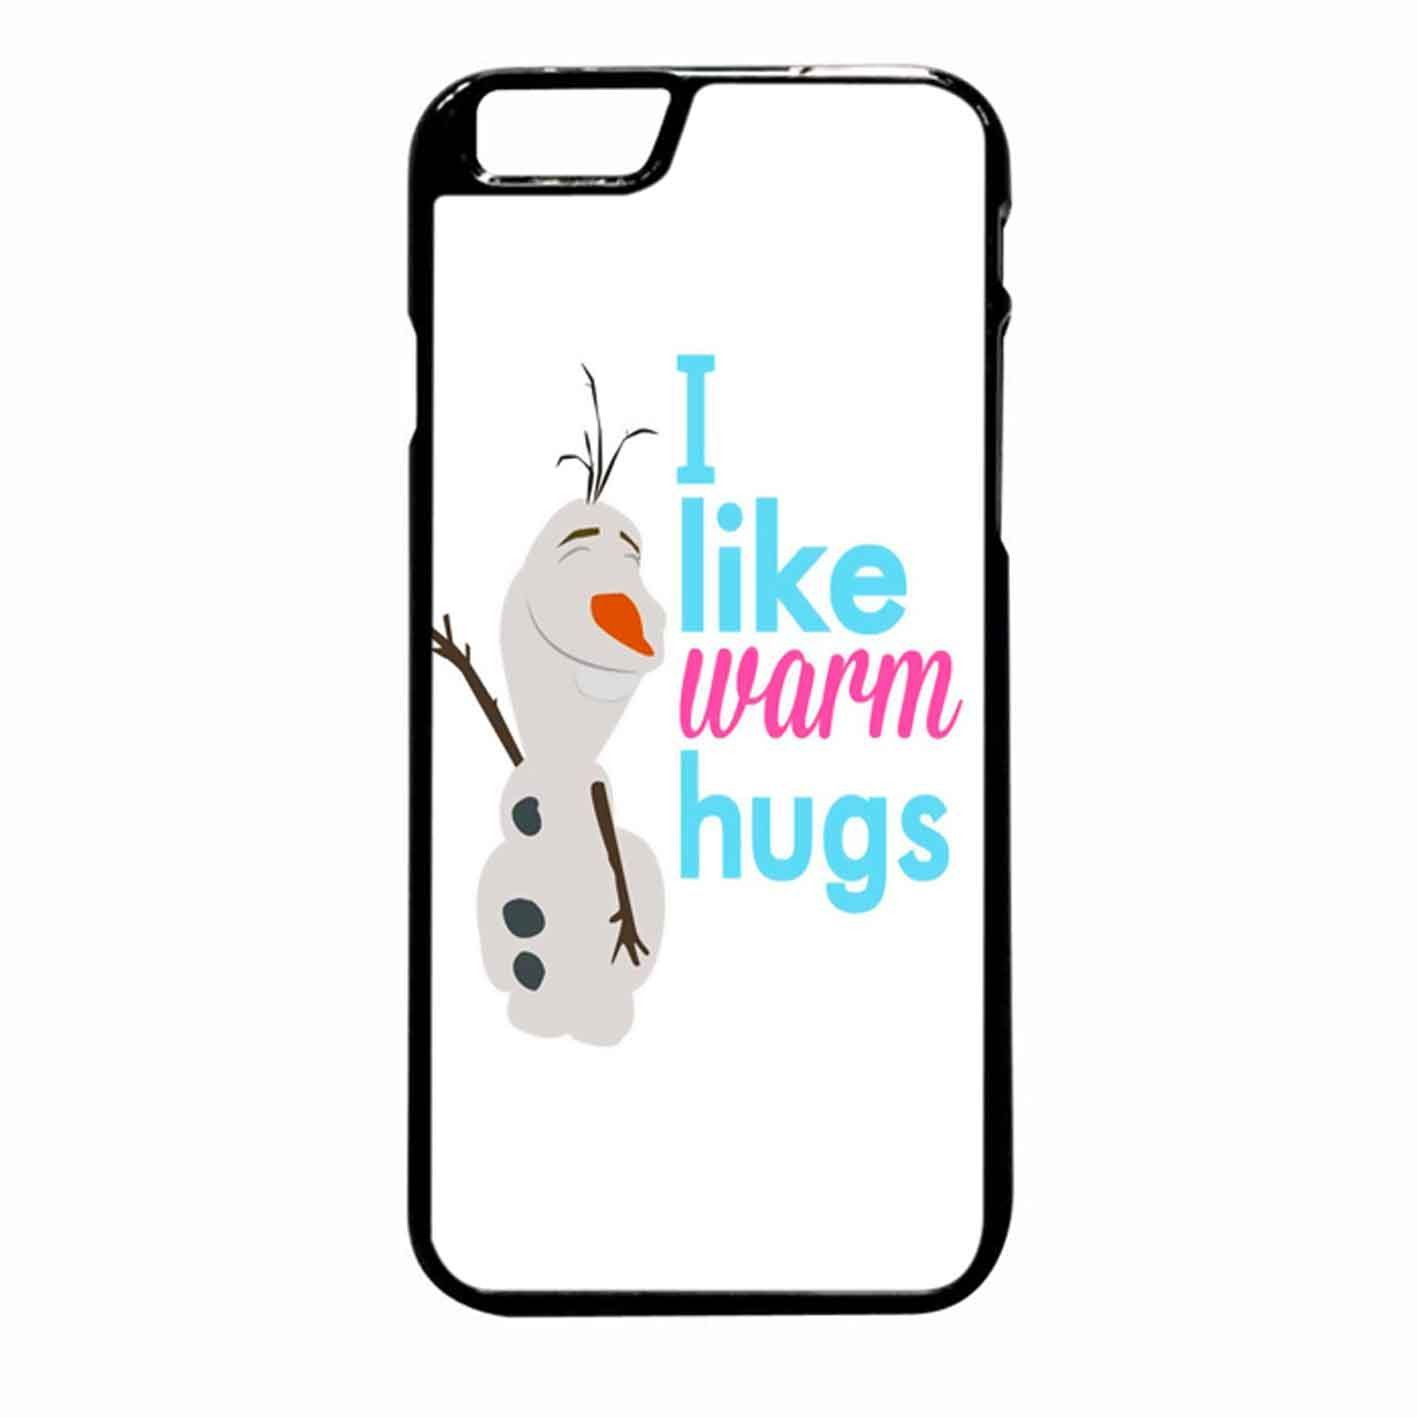 Disney Frozen 2 iPhone 6 Plus case | Phone cases | Pinterest